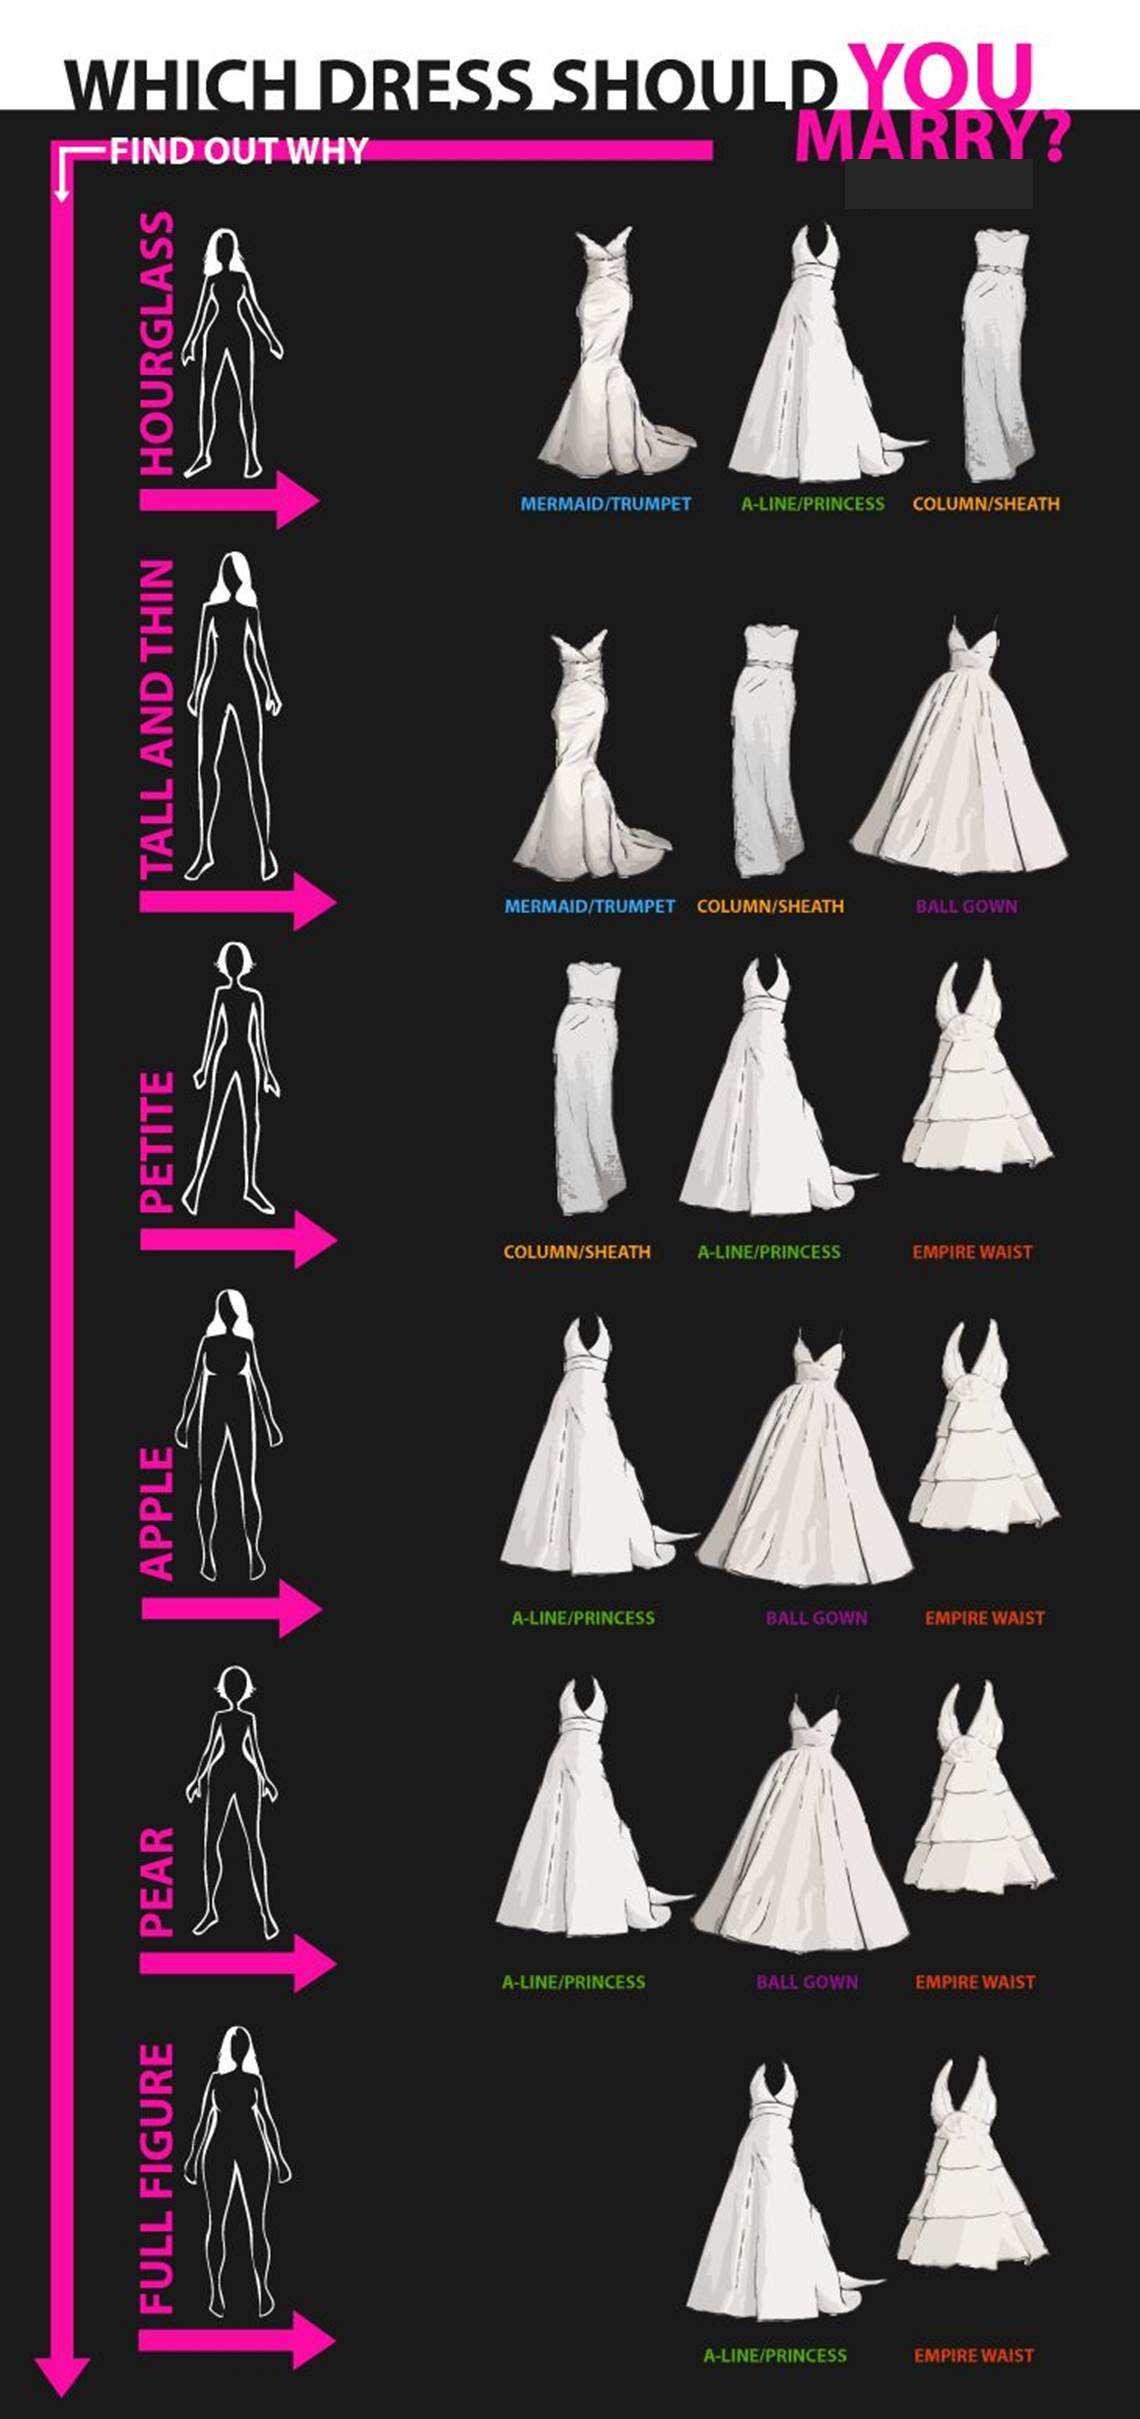 Which Dress Should You Marry